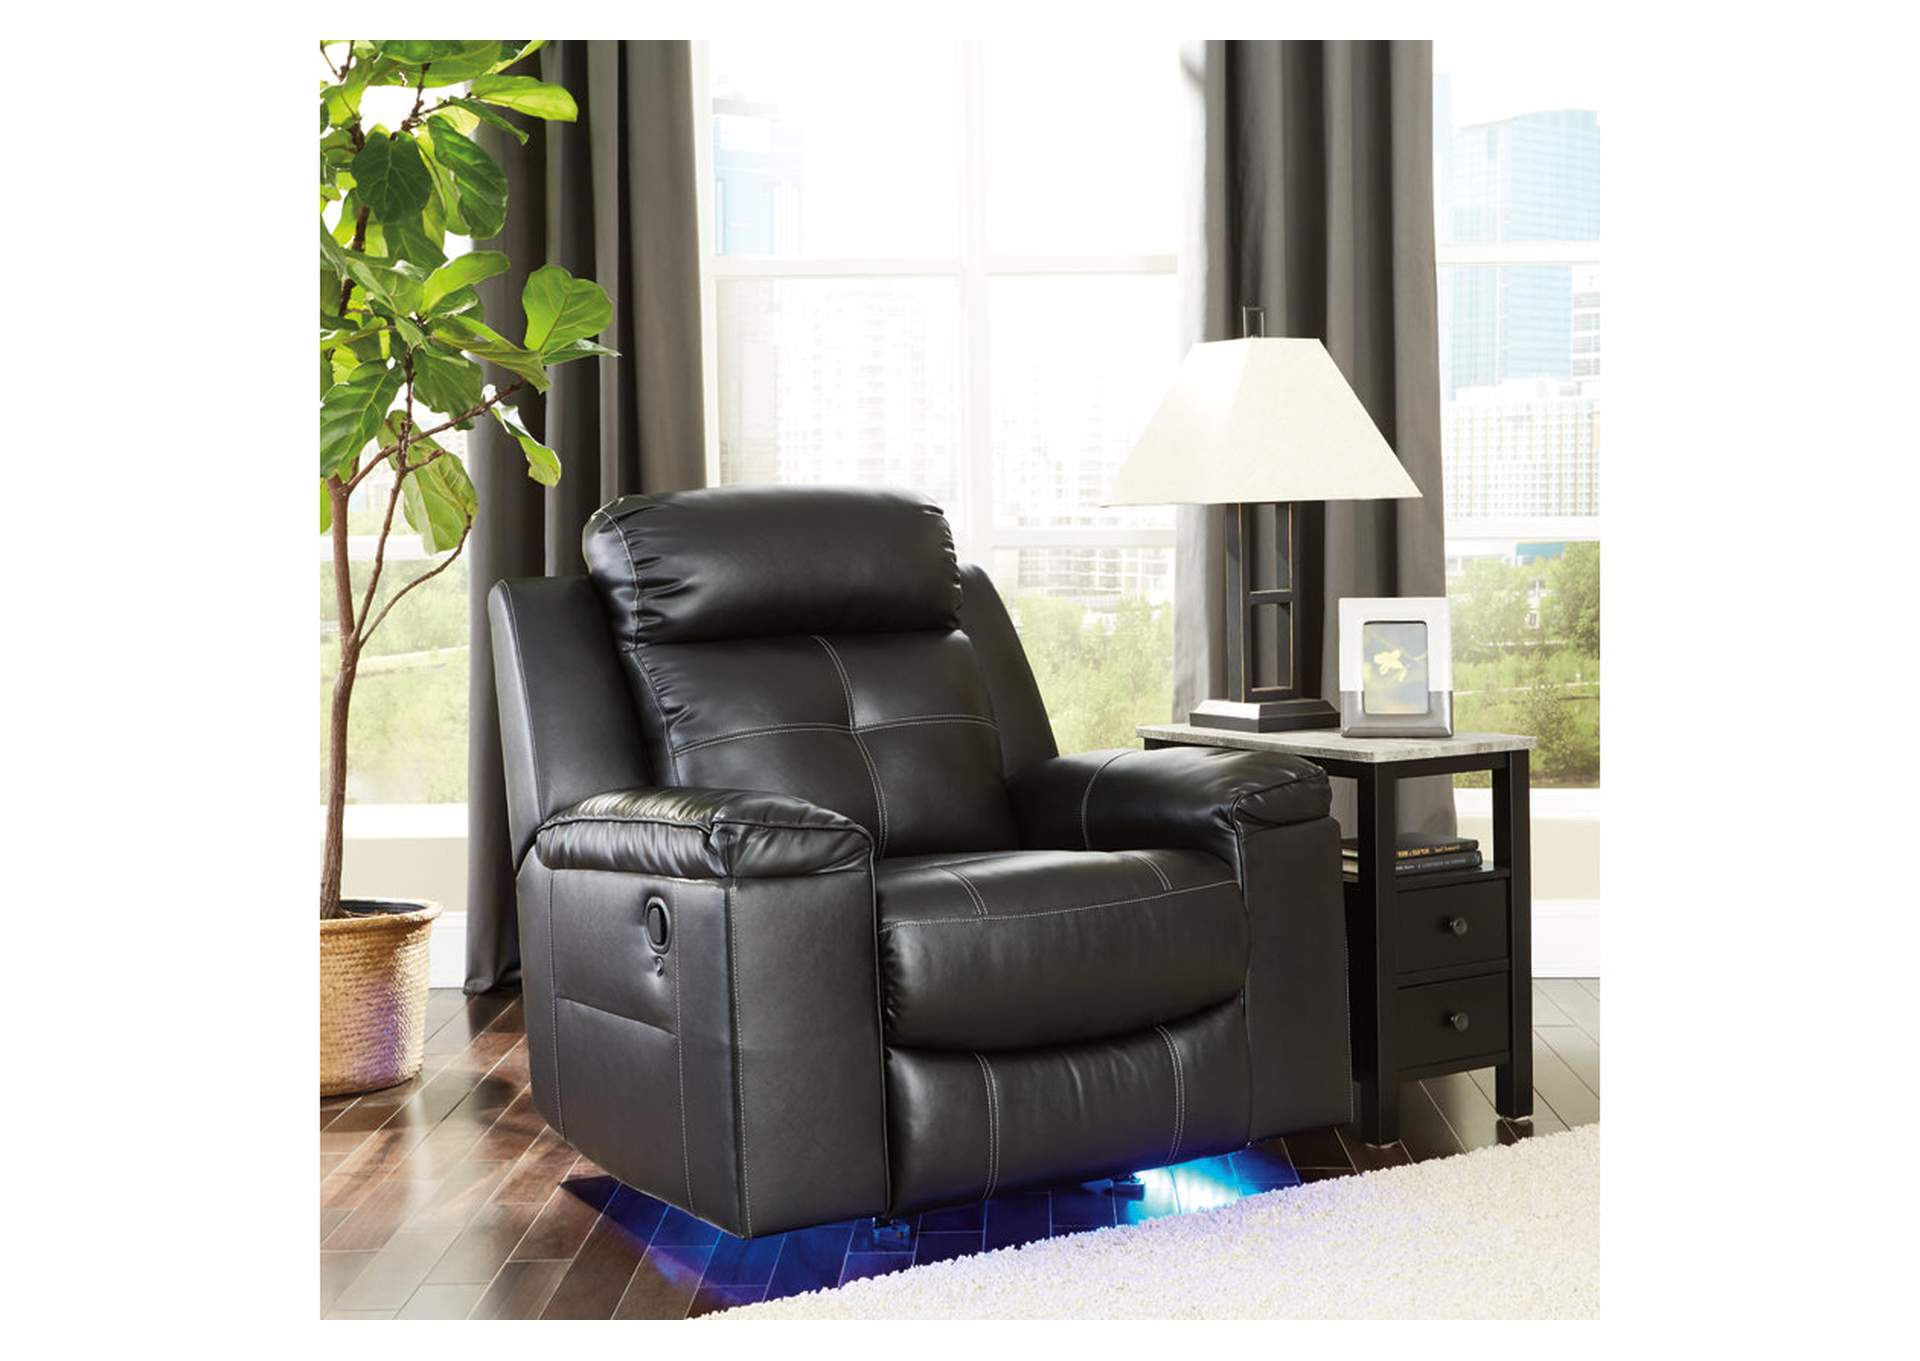 Kempten Black Rocker Recliner,Signature Design By Ashley